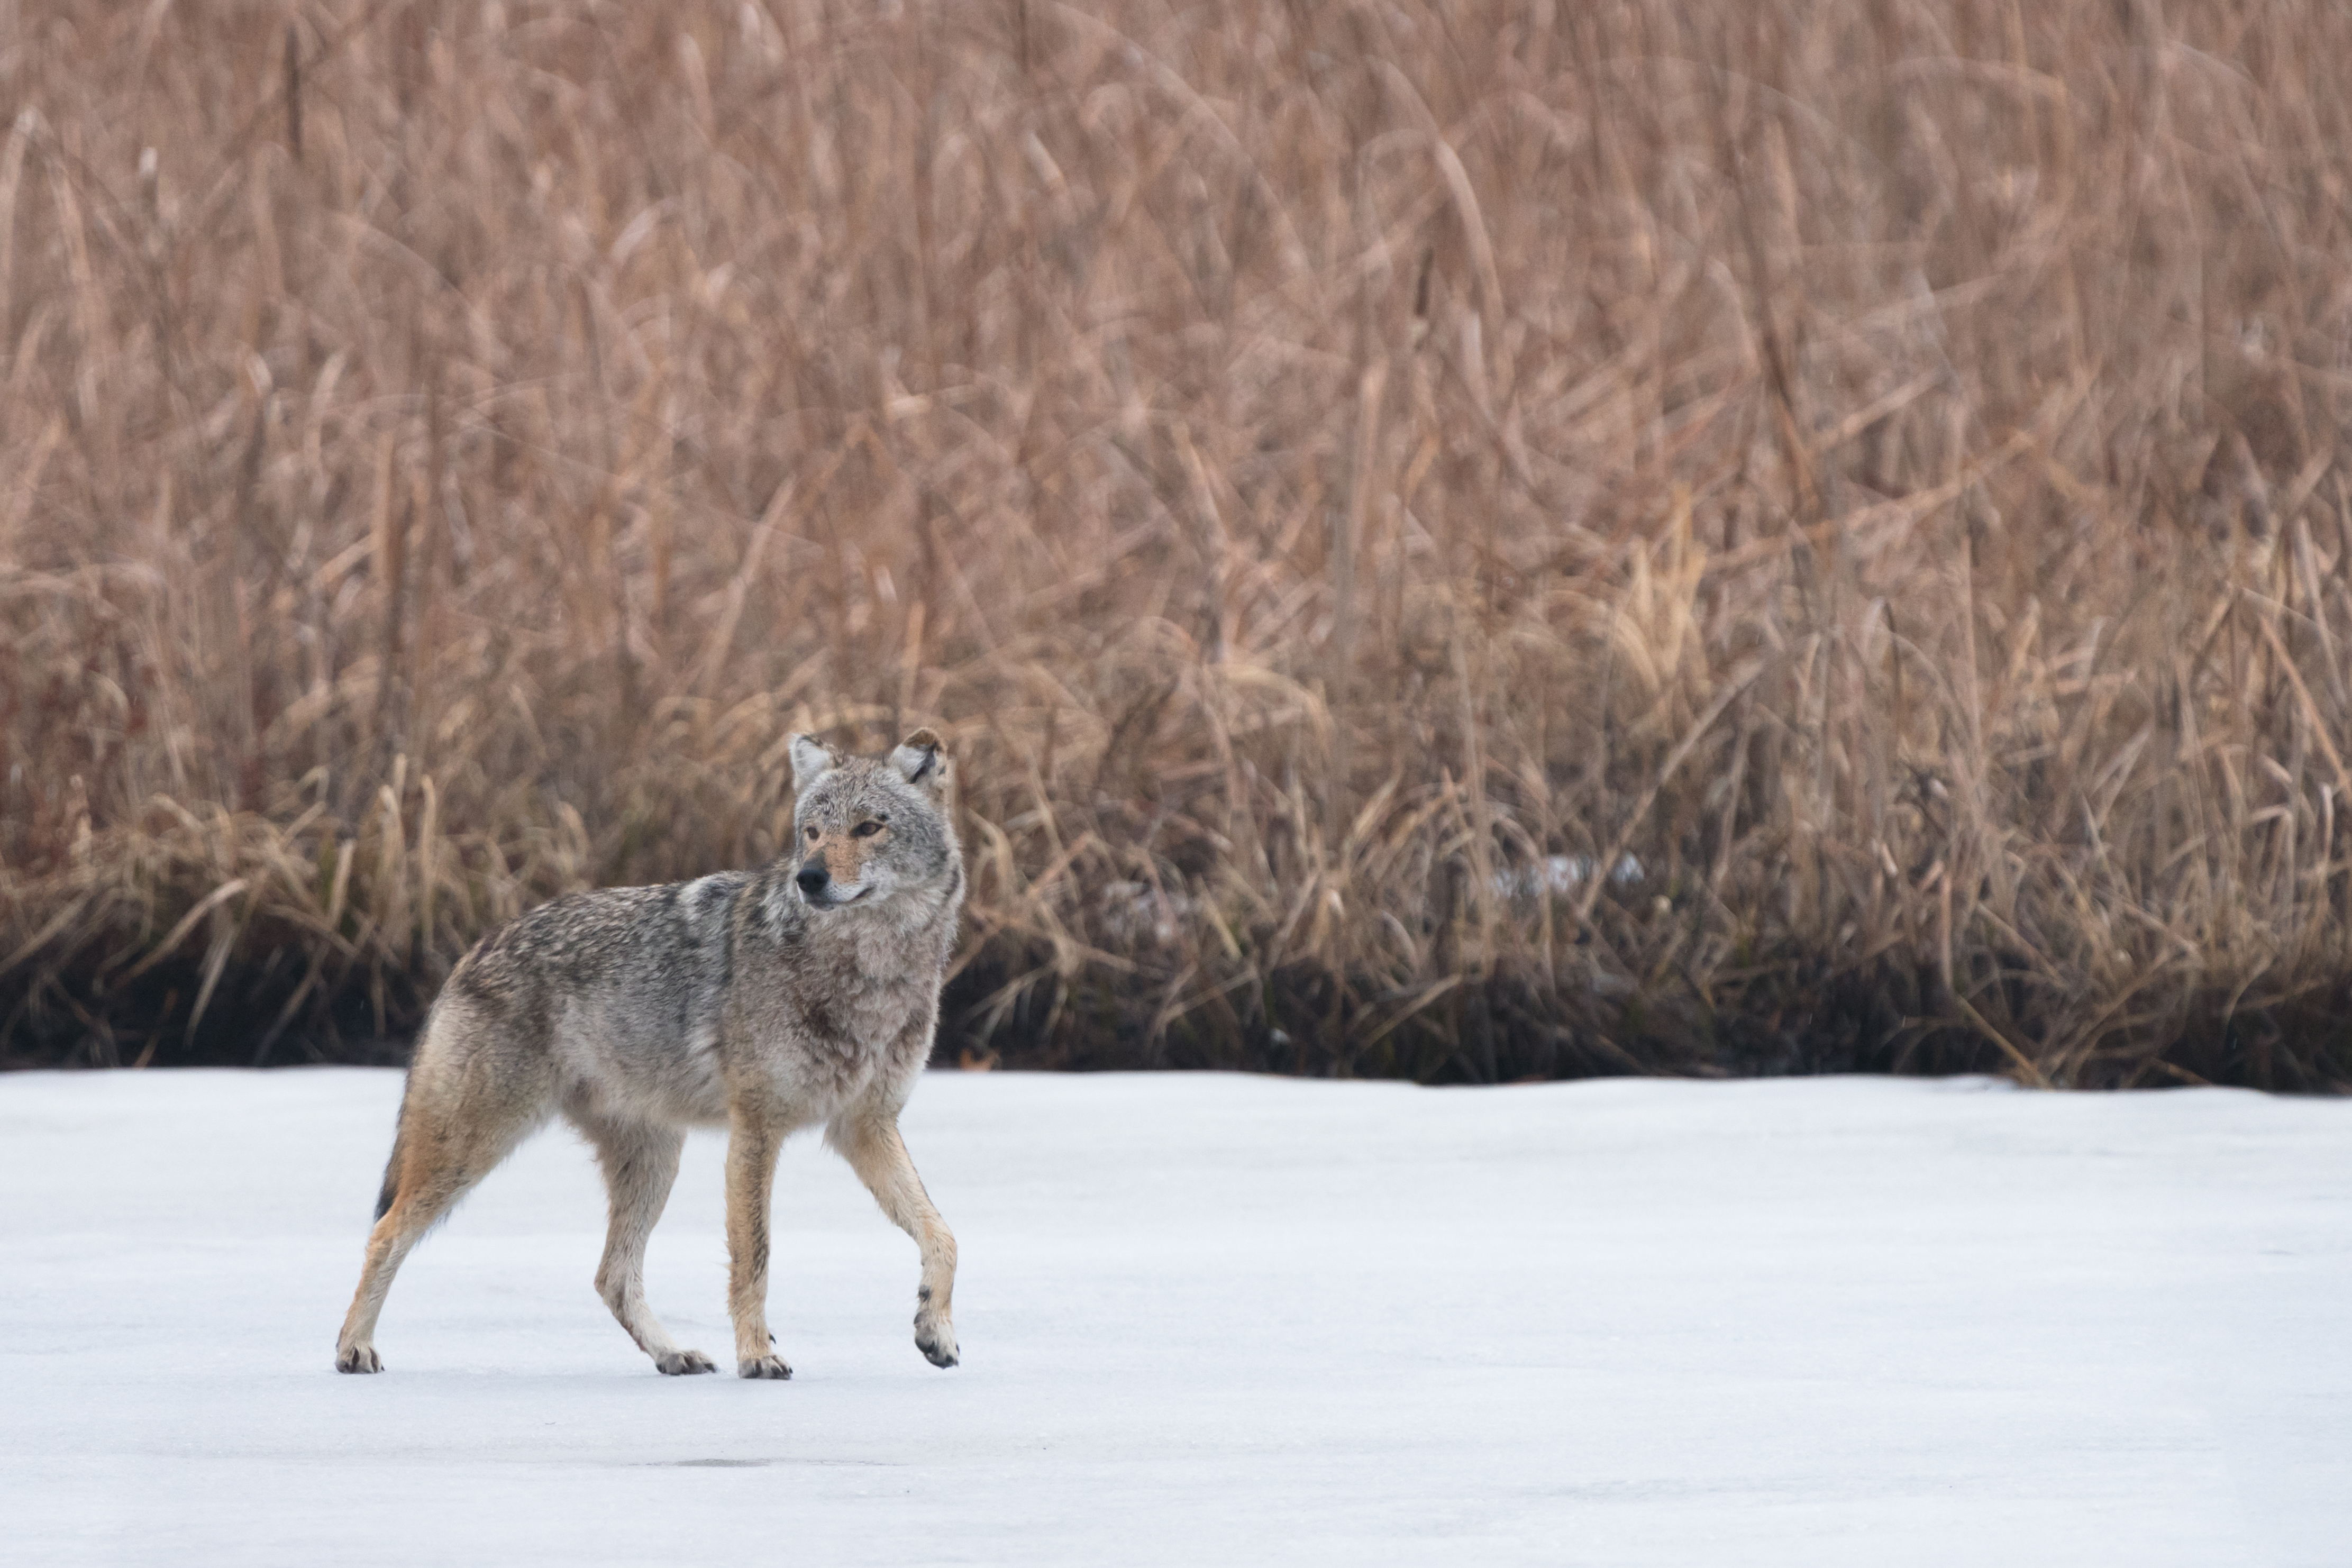 103493 download wallpaper Animals, Coyote, Animal, Grey, Snow, Wildlife screensavers and pictures for free